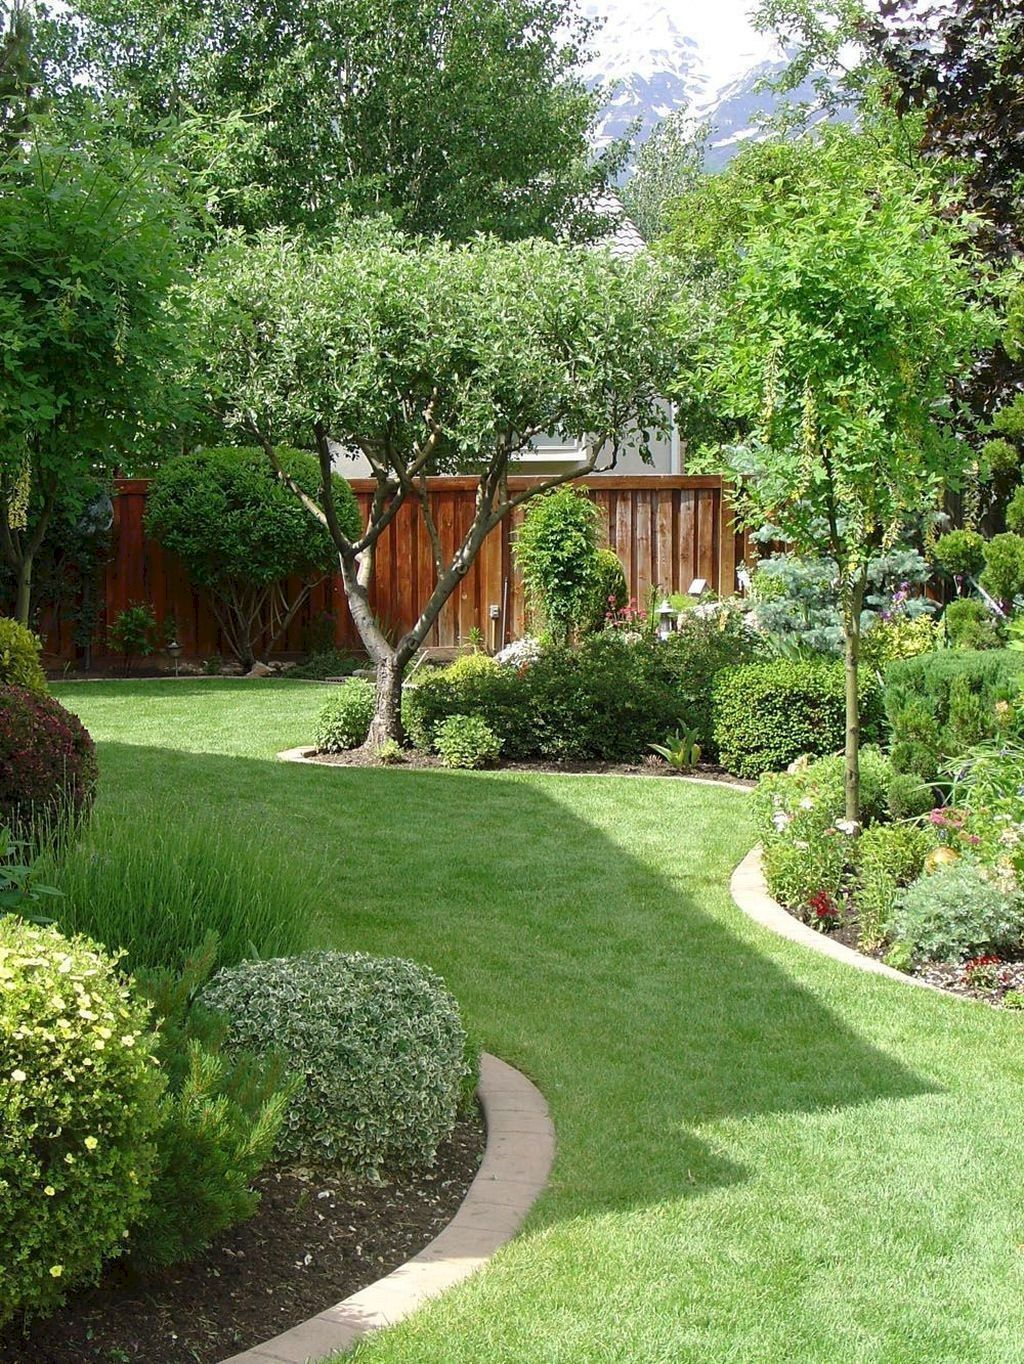 80 Small Backyard Garden Landscaping Ideas #gardenlandscaping